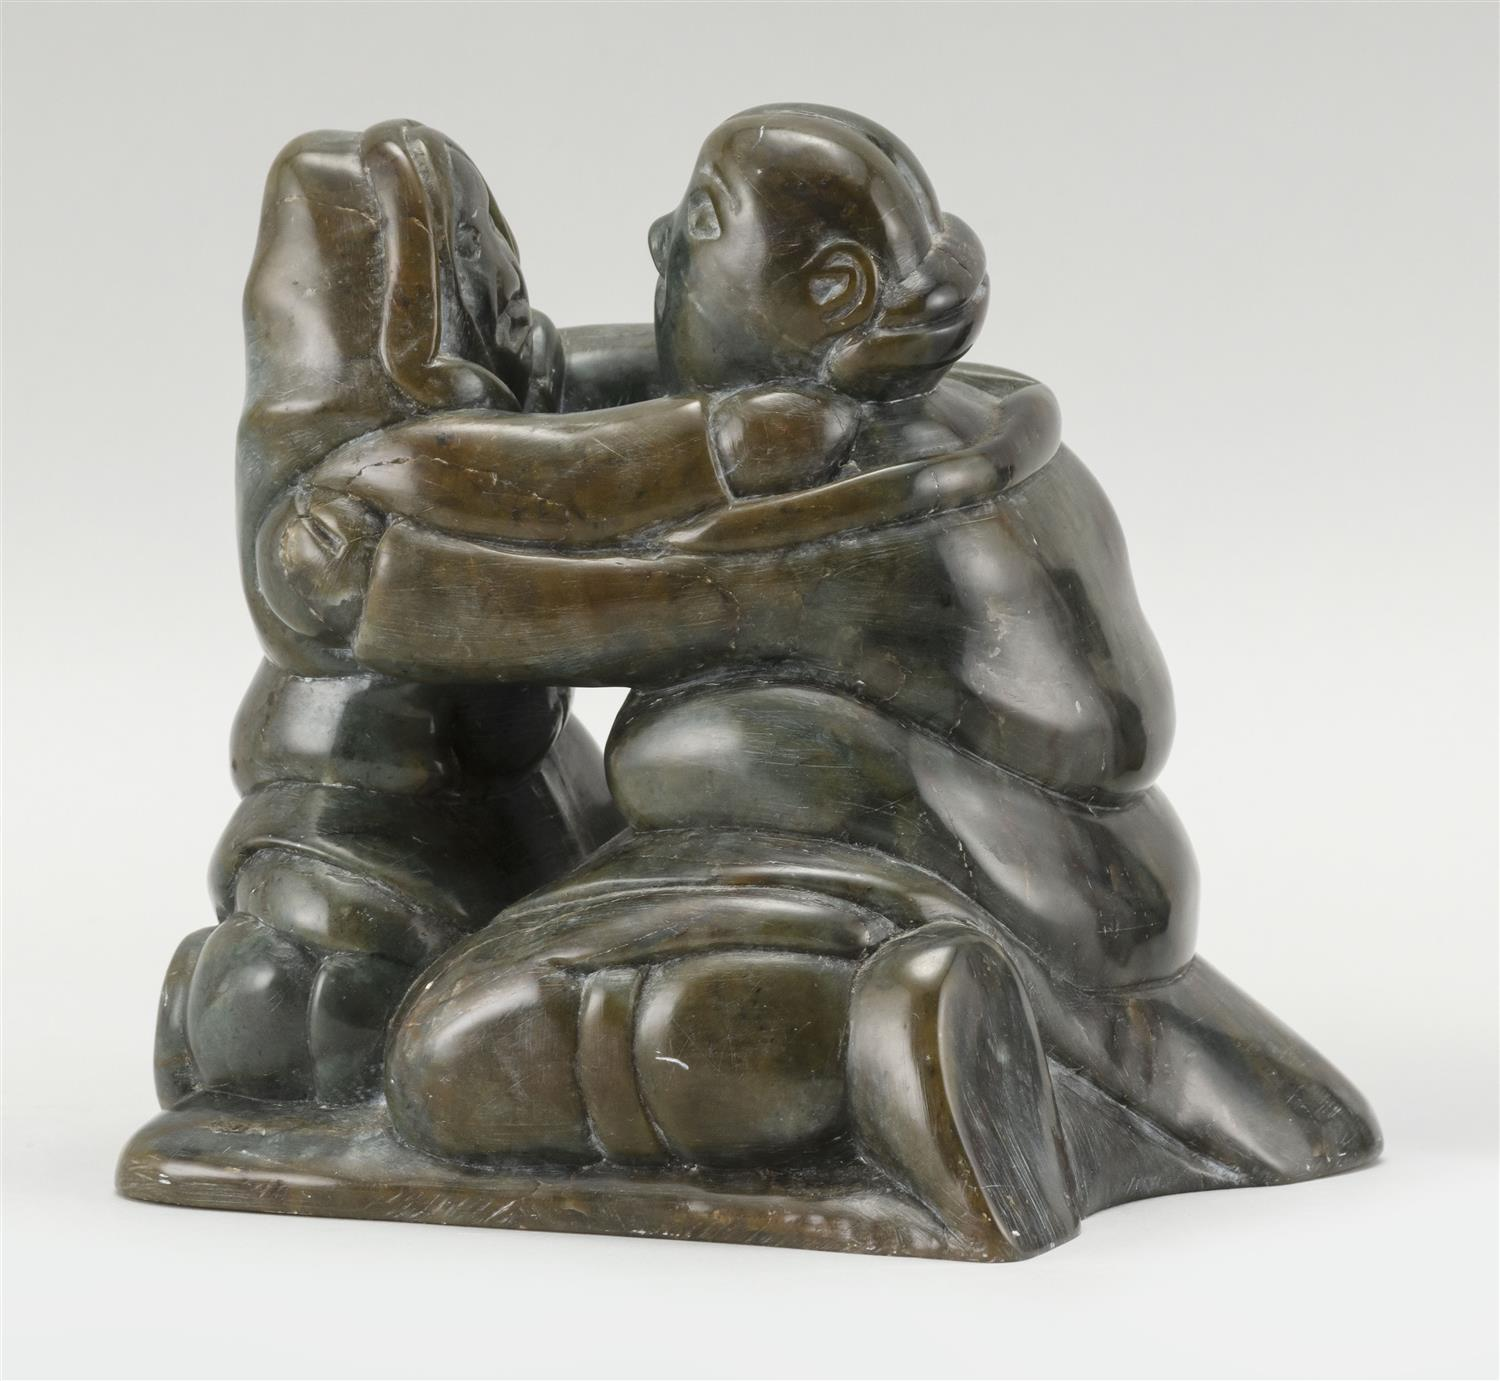 "BROWN AND DEEP GRAY SERPENTINE CARVING OF AN EMBRACING ESKIMO COUPLE Illegibly signed. Height 6"". Proceeds to benefit Cape Symphony..."